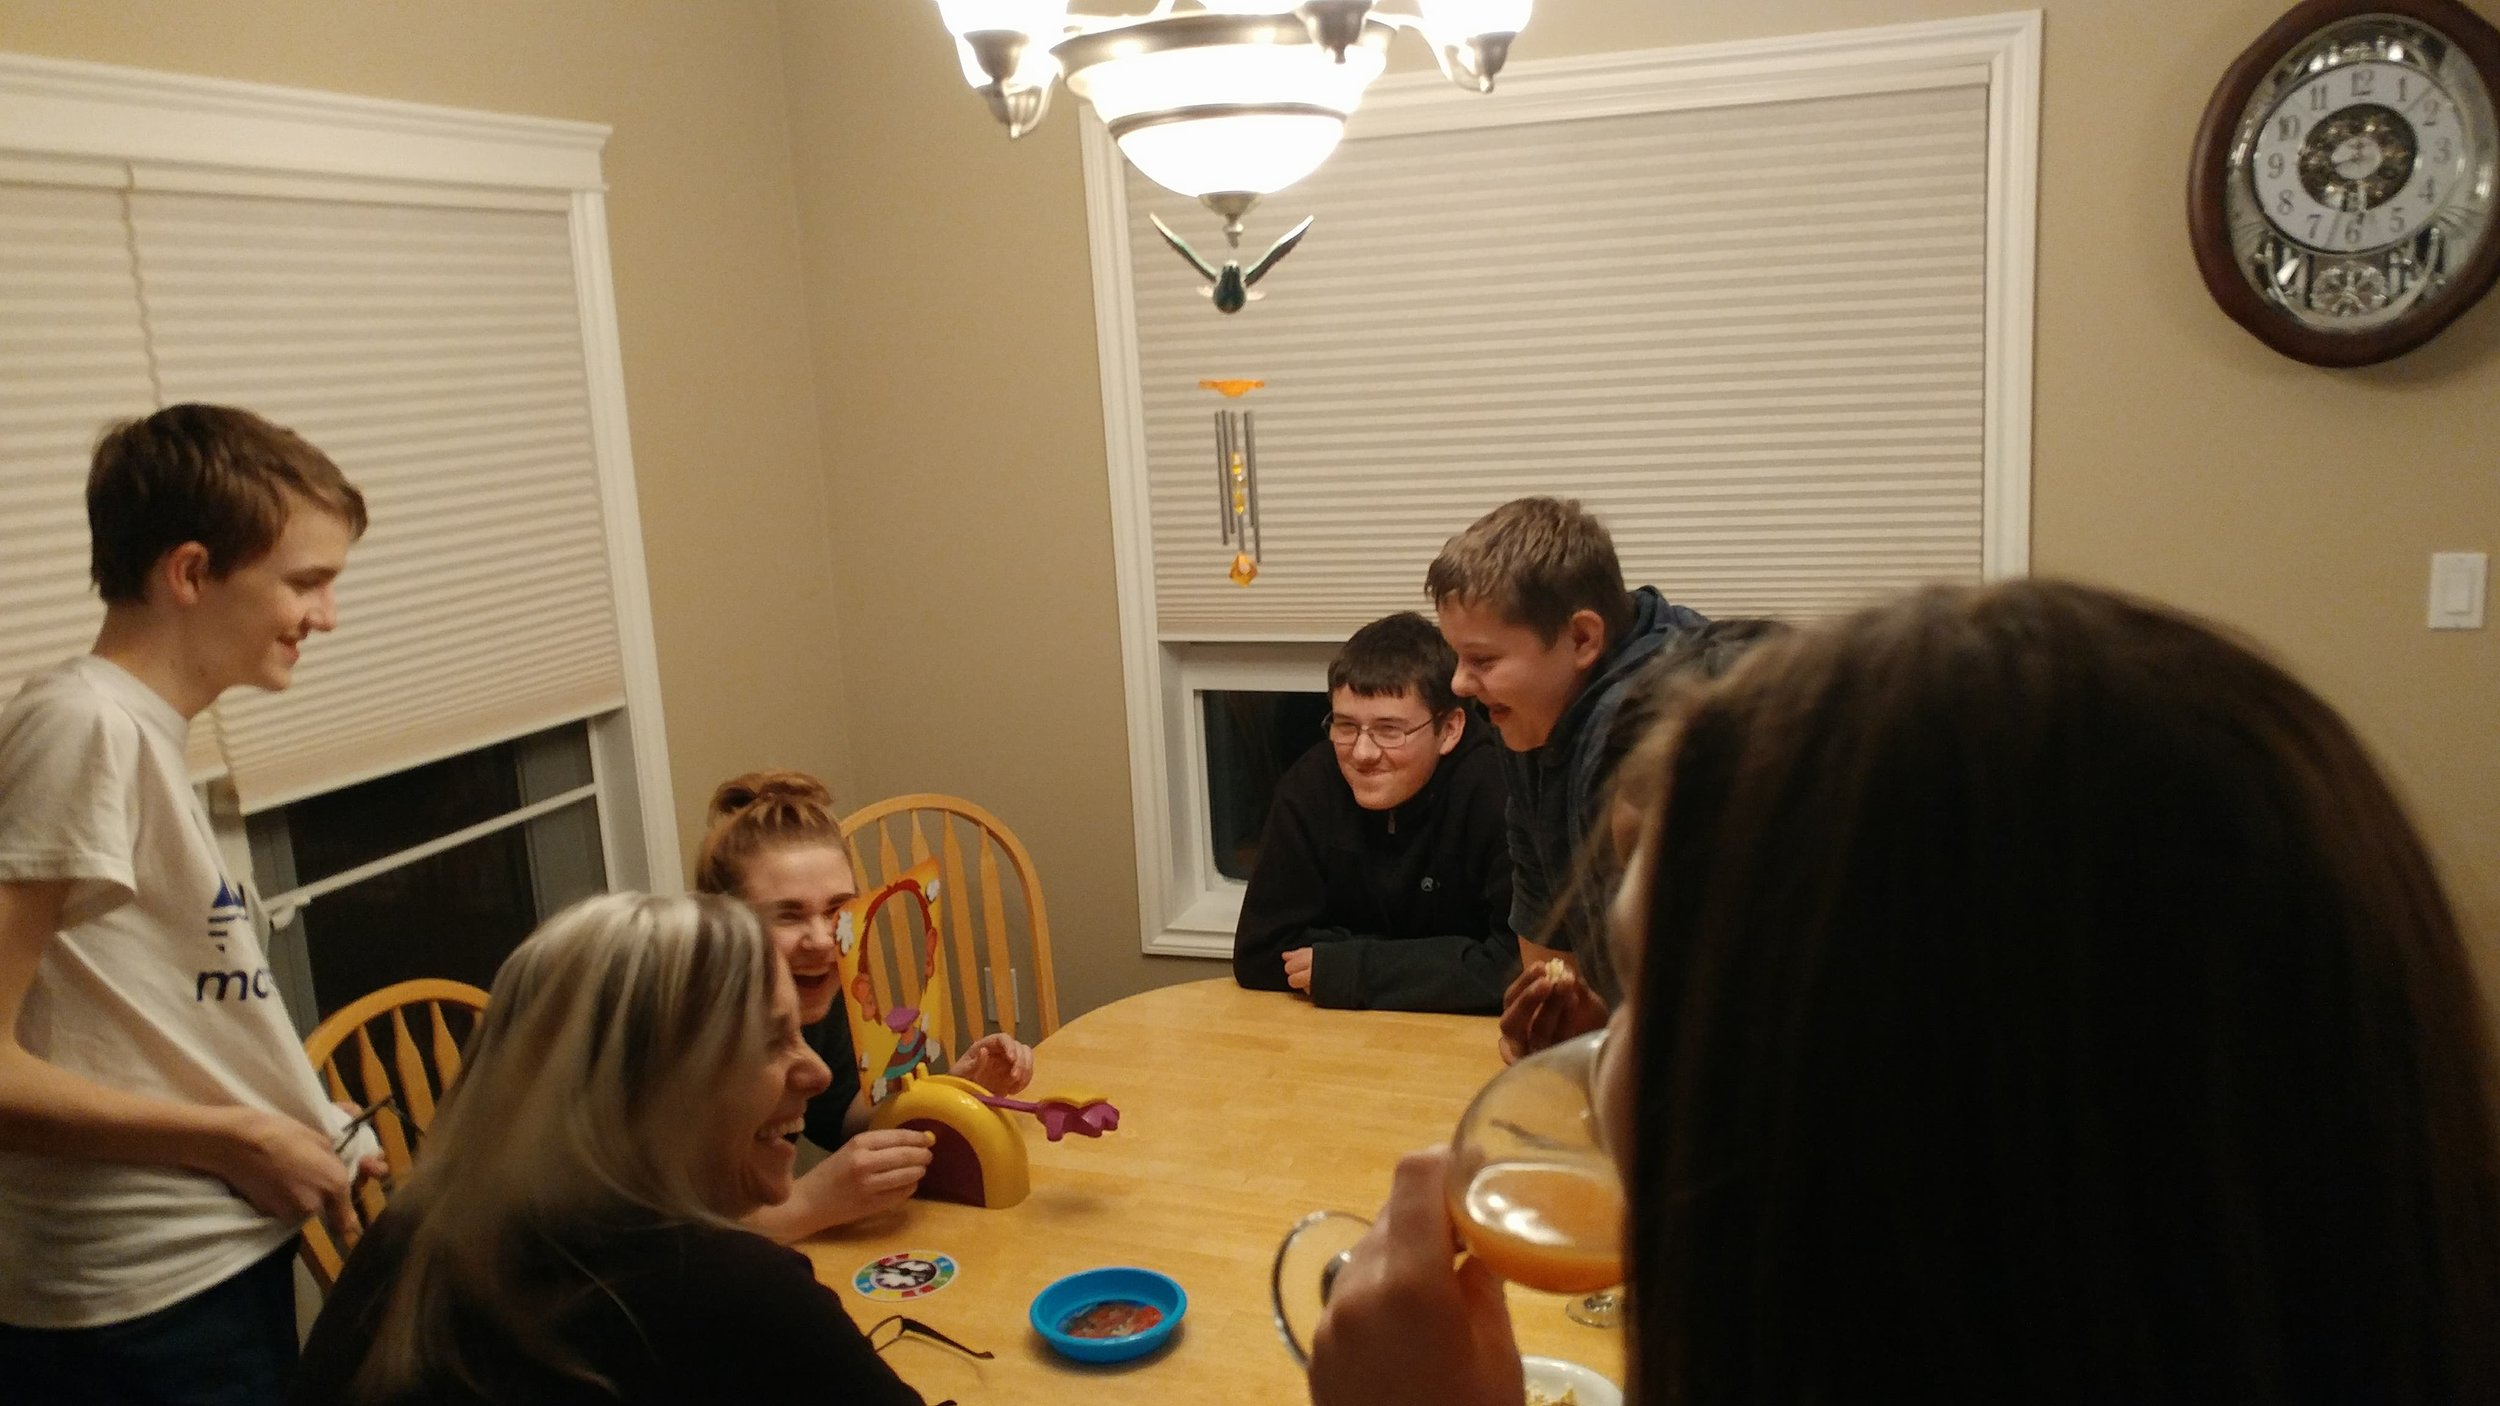 Game Night at Pastors House